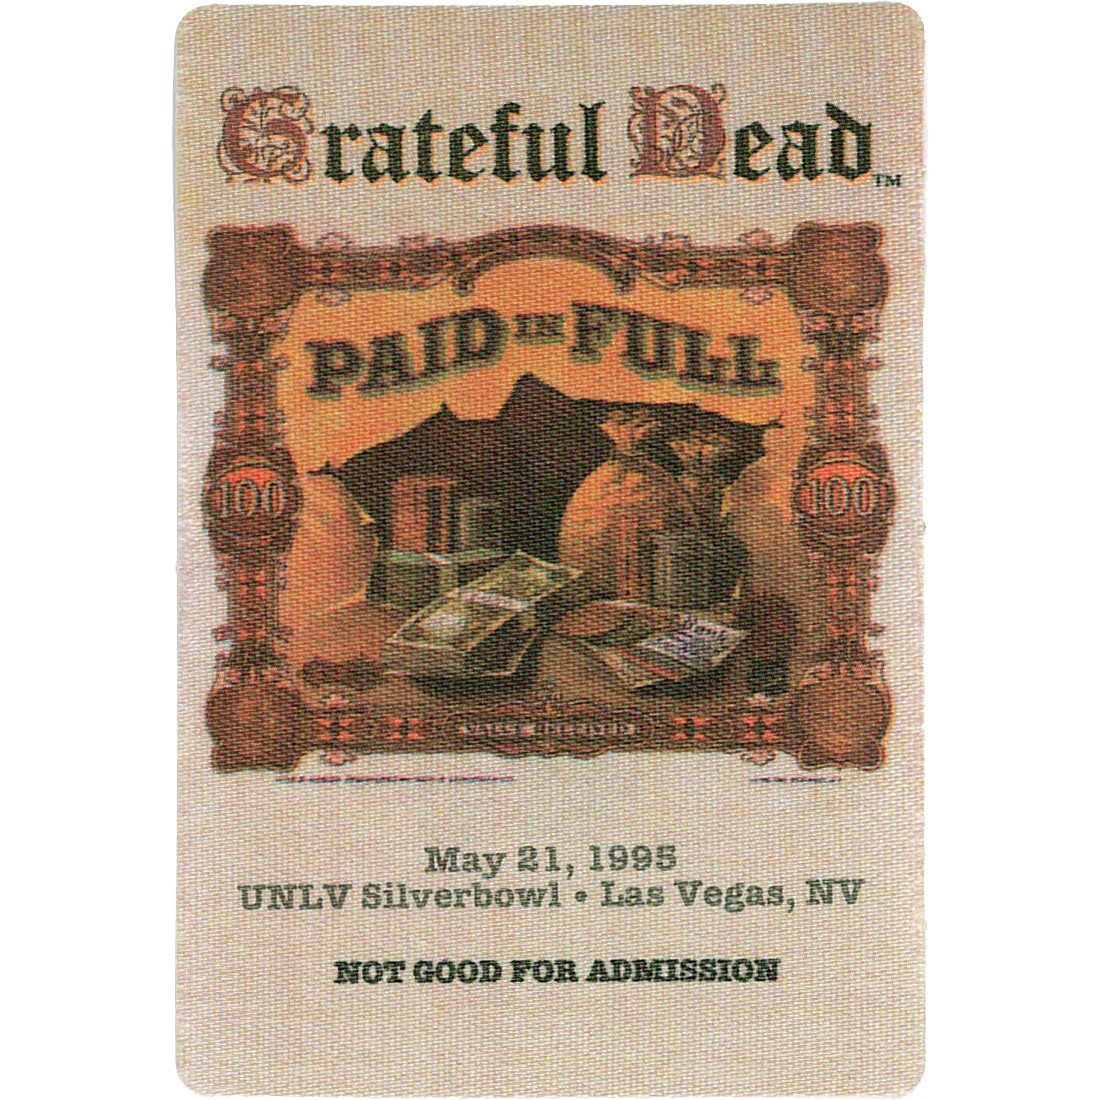 Grateful Dead 1995 05-21 Backstage Pass